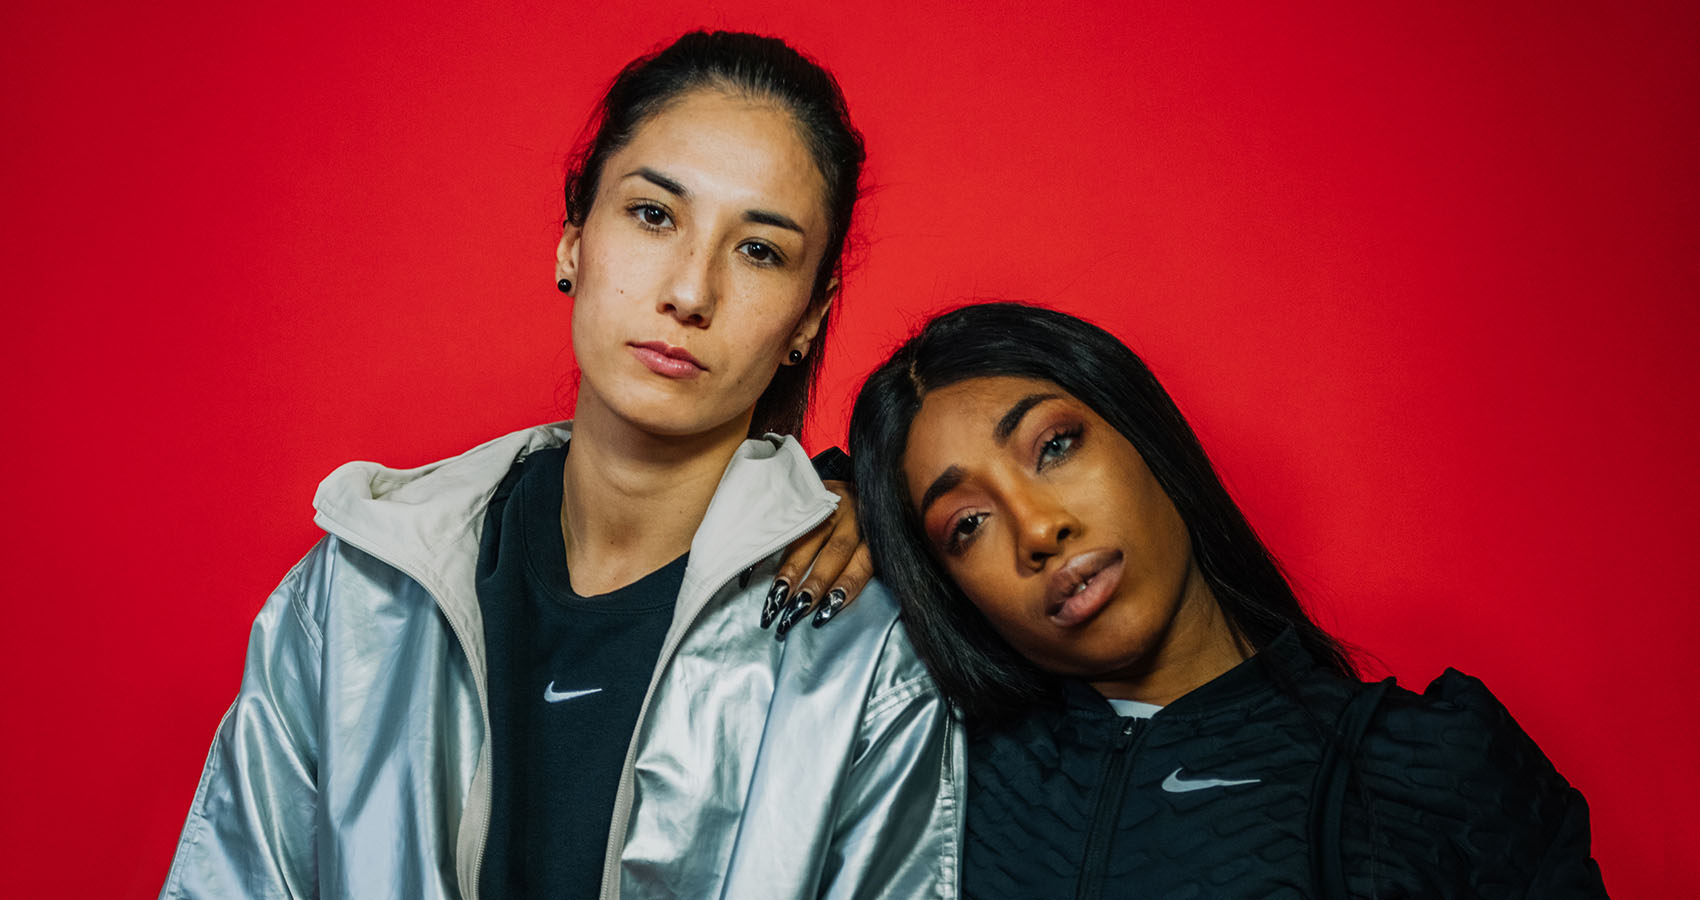 We Interview Hip-Hop Star Eunique & National Soccer Team Kicker Sara Doorsoun At The Nike Women Berlin Days